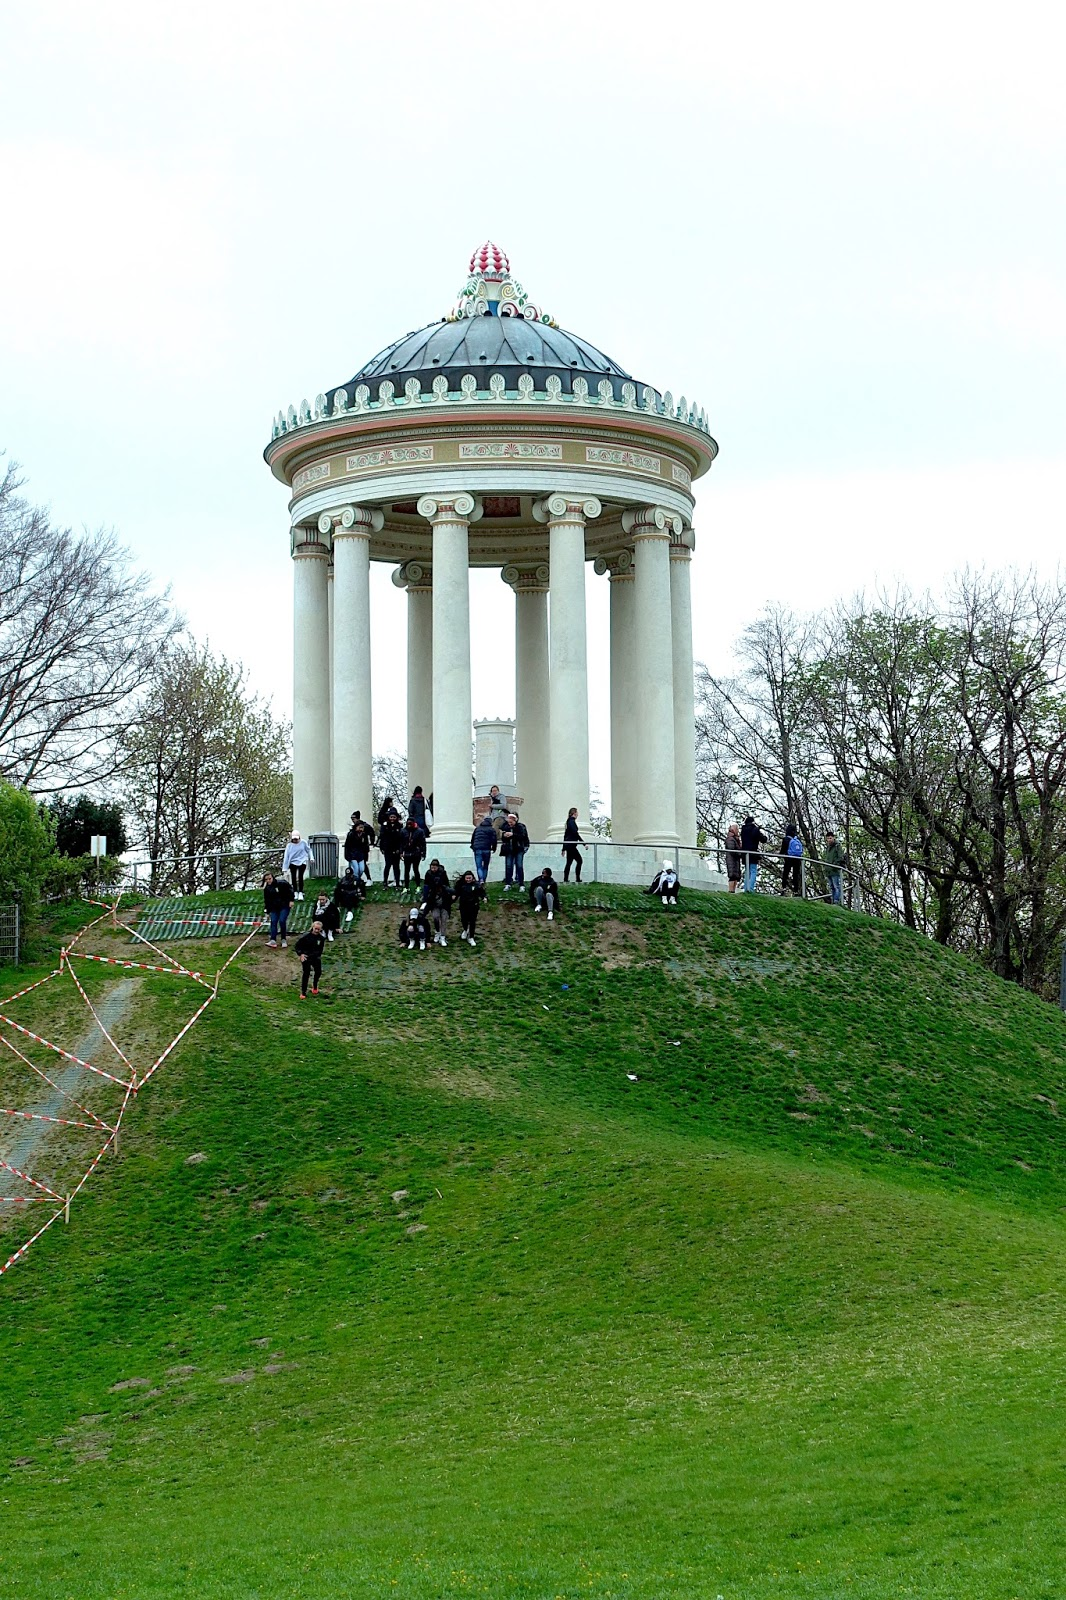 Englischer Style simple solutions for planet earth and humanity paga 2017 day 27 munich englischer garten